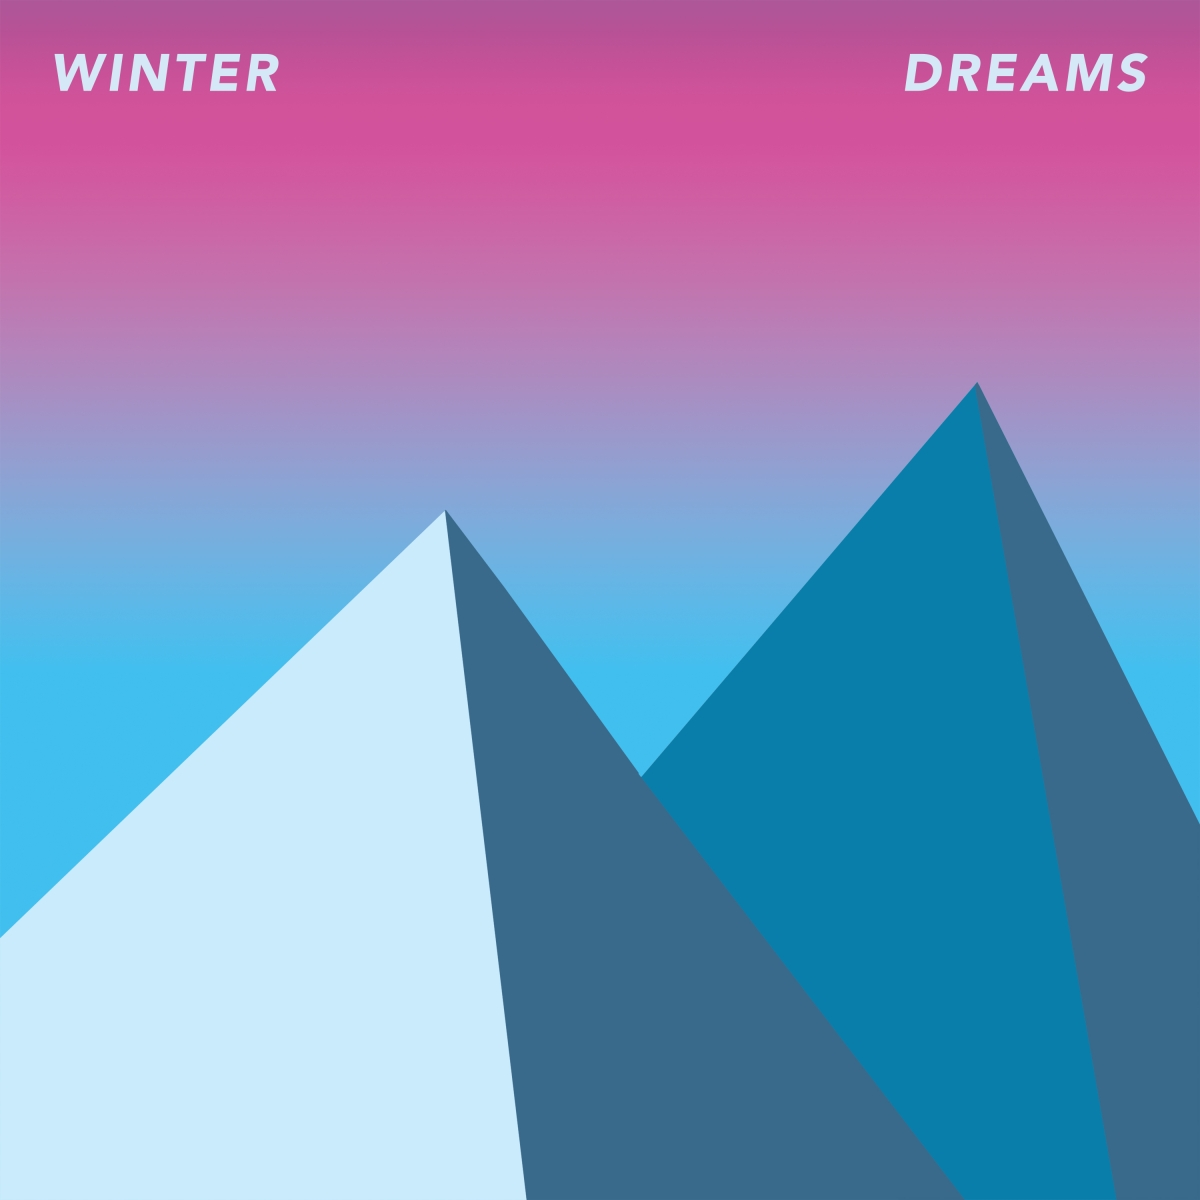 Winter Dreams. Photo Credit: Korean Indie